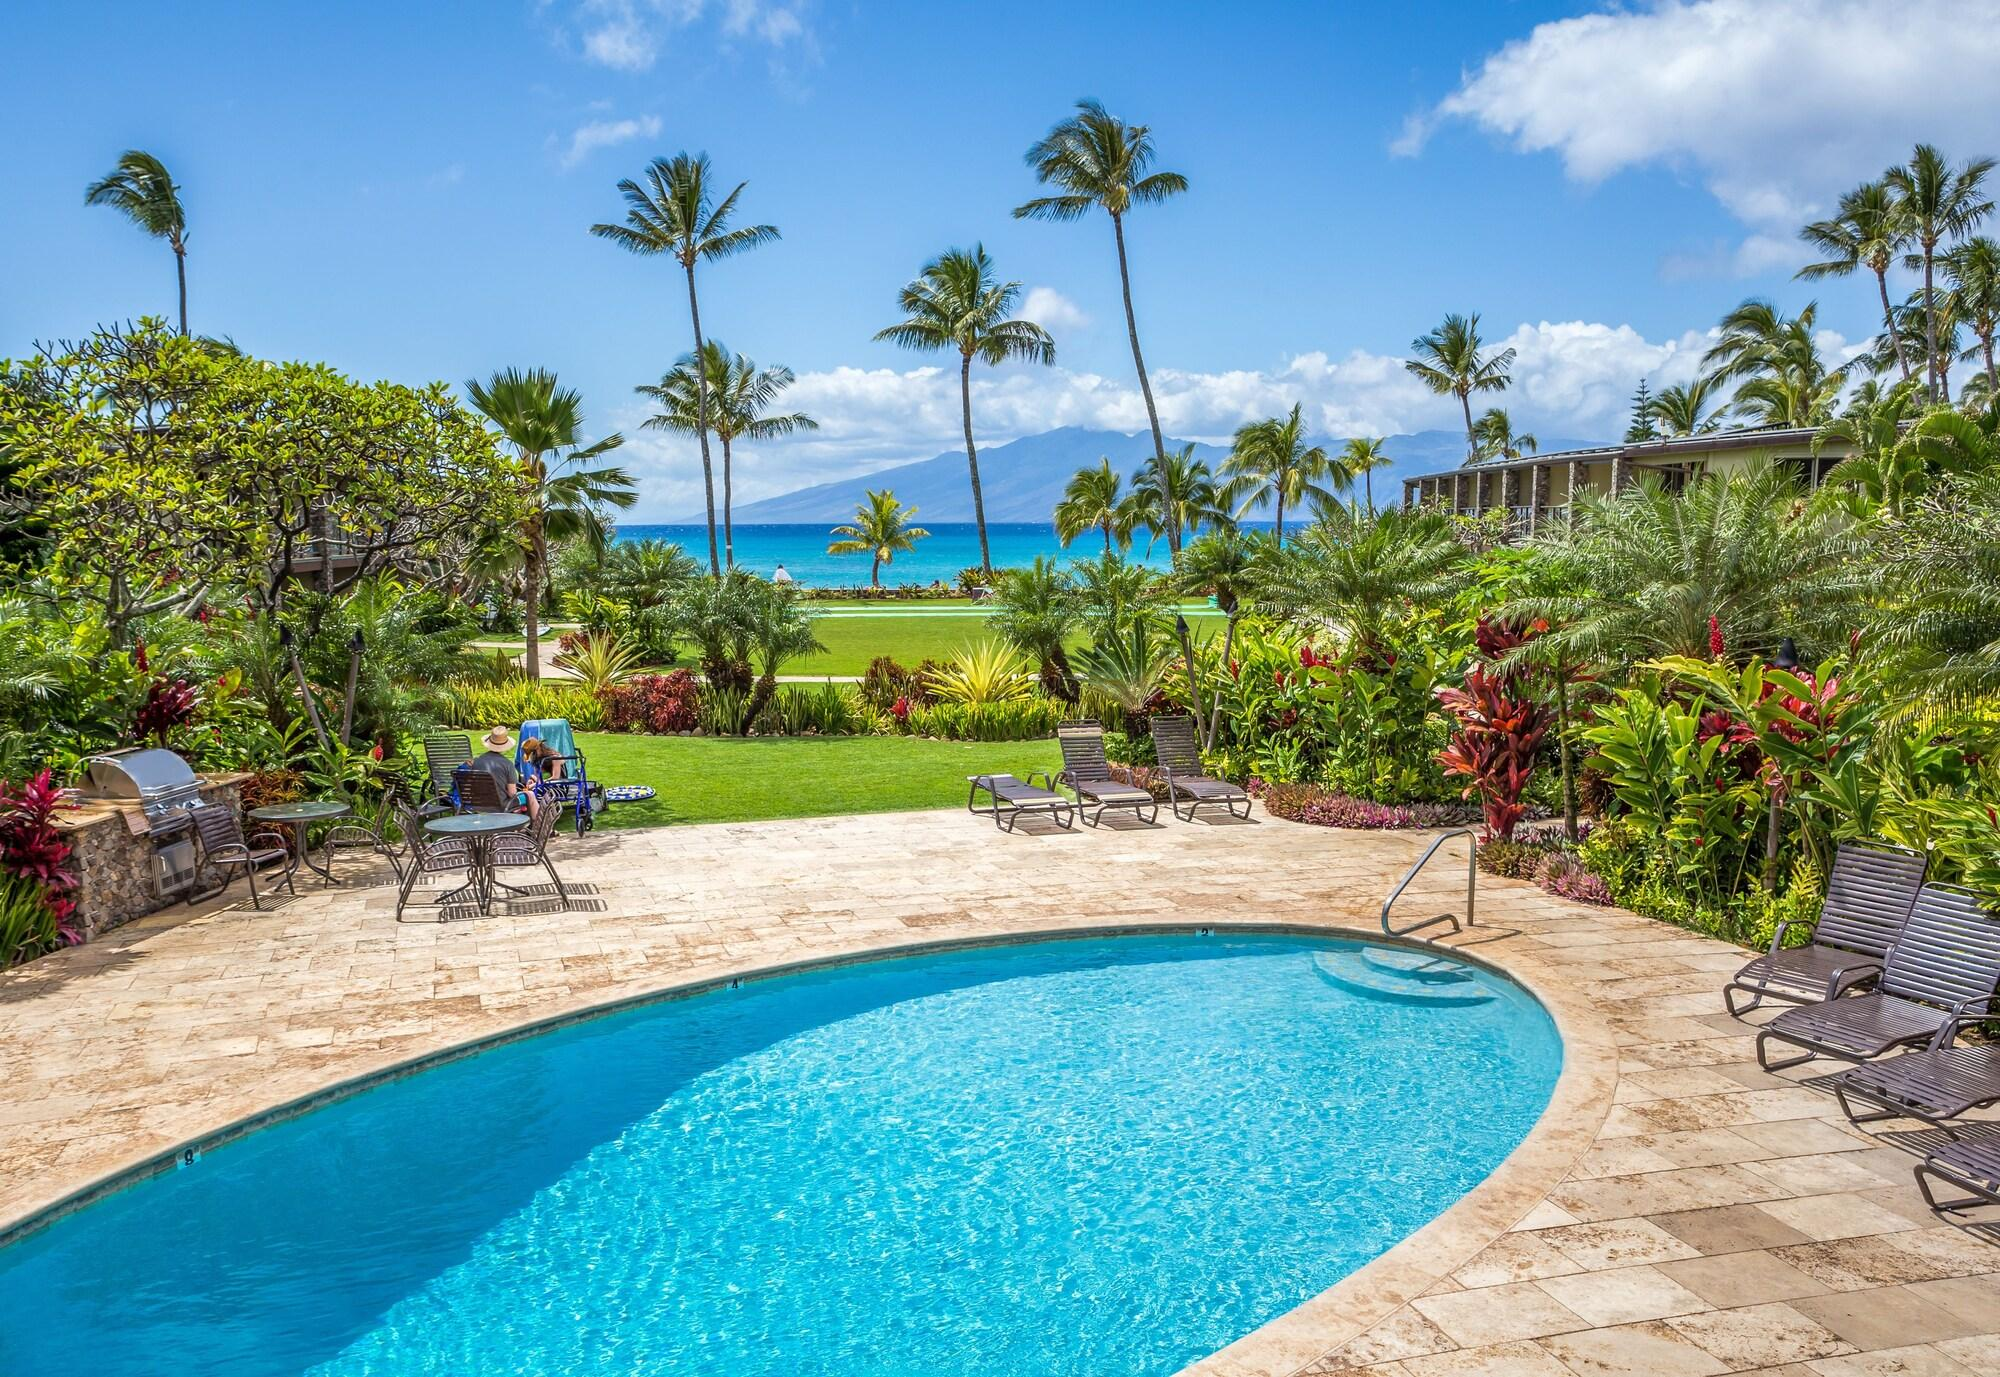 The Mauian - Boutique Beach Studios On Napili Bay